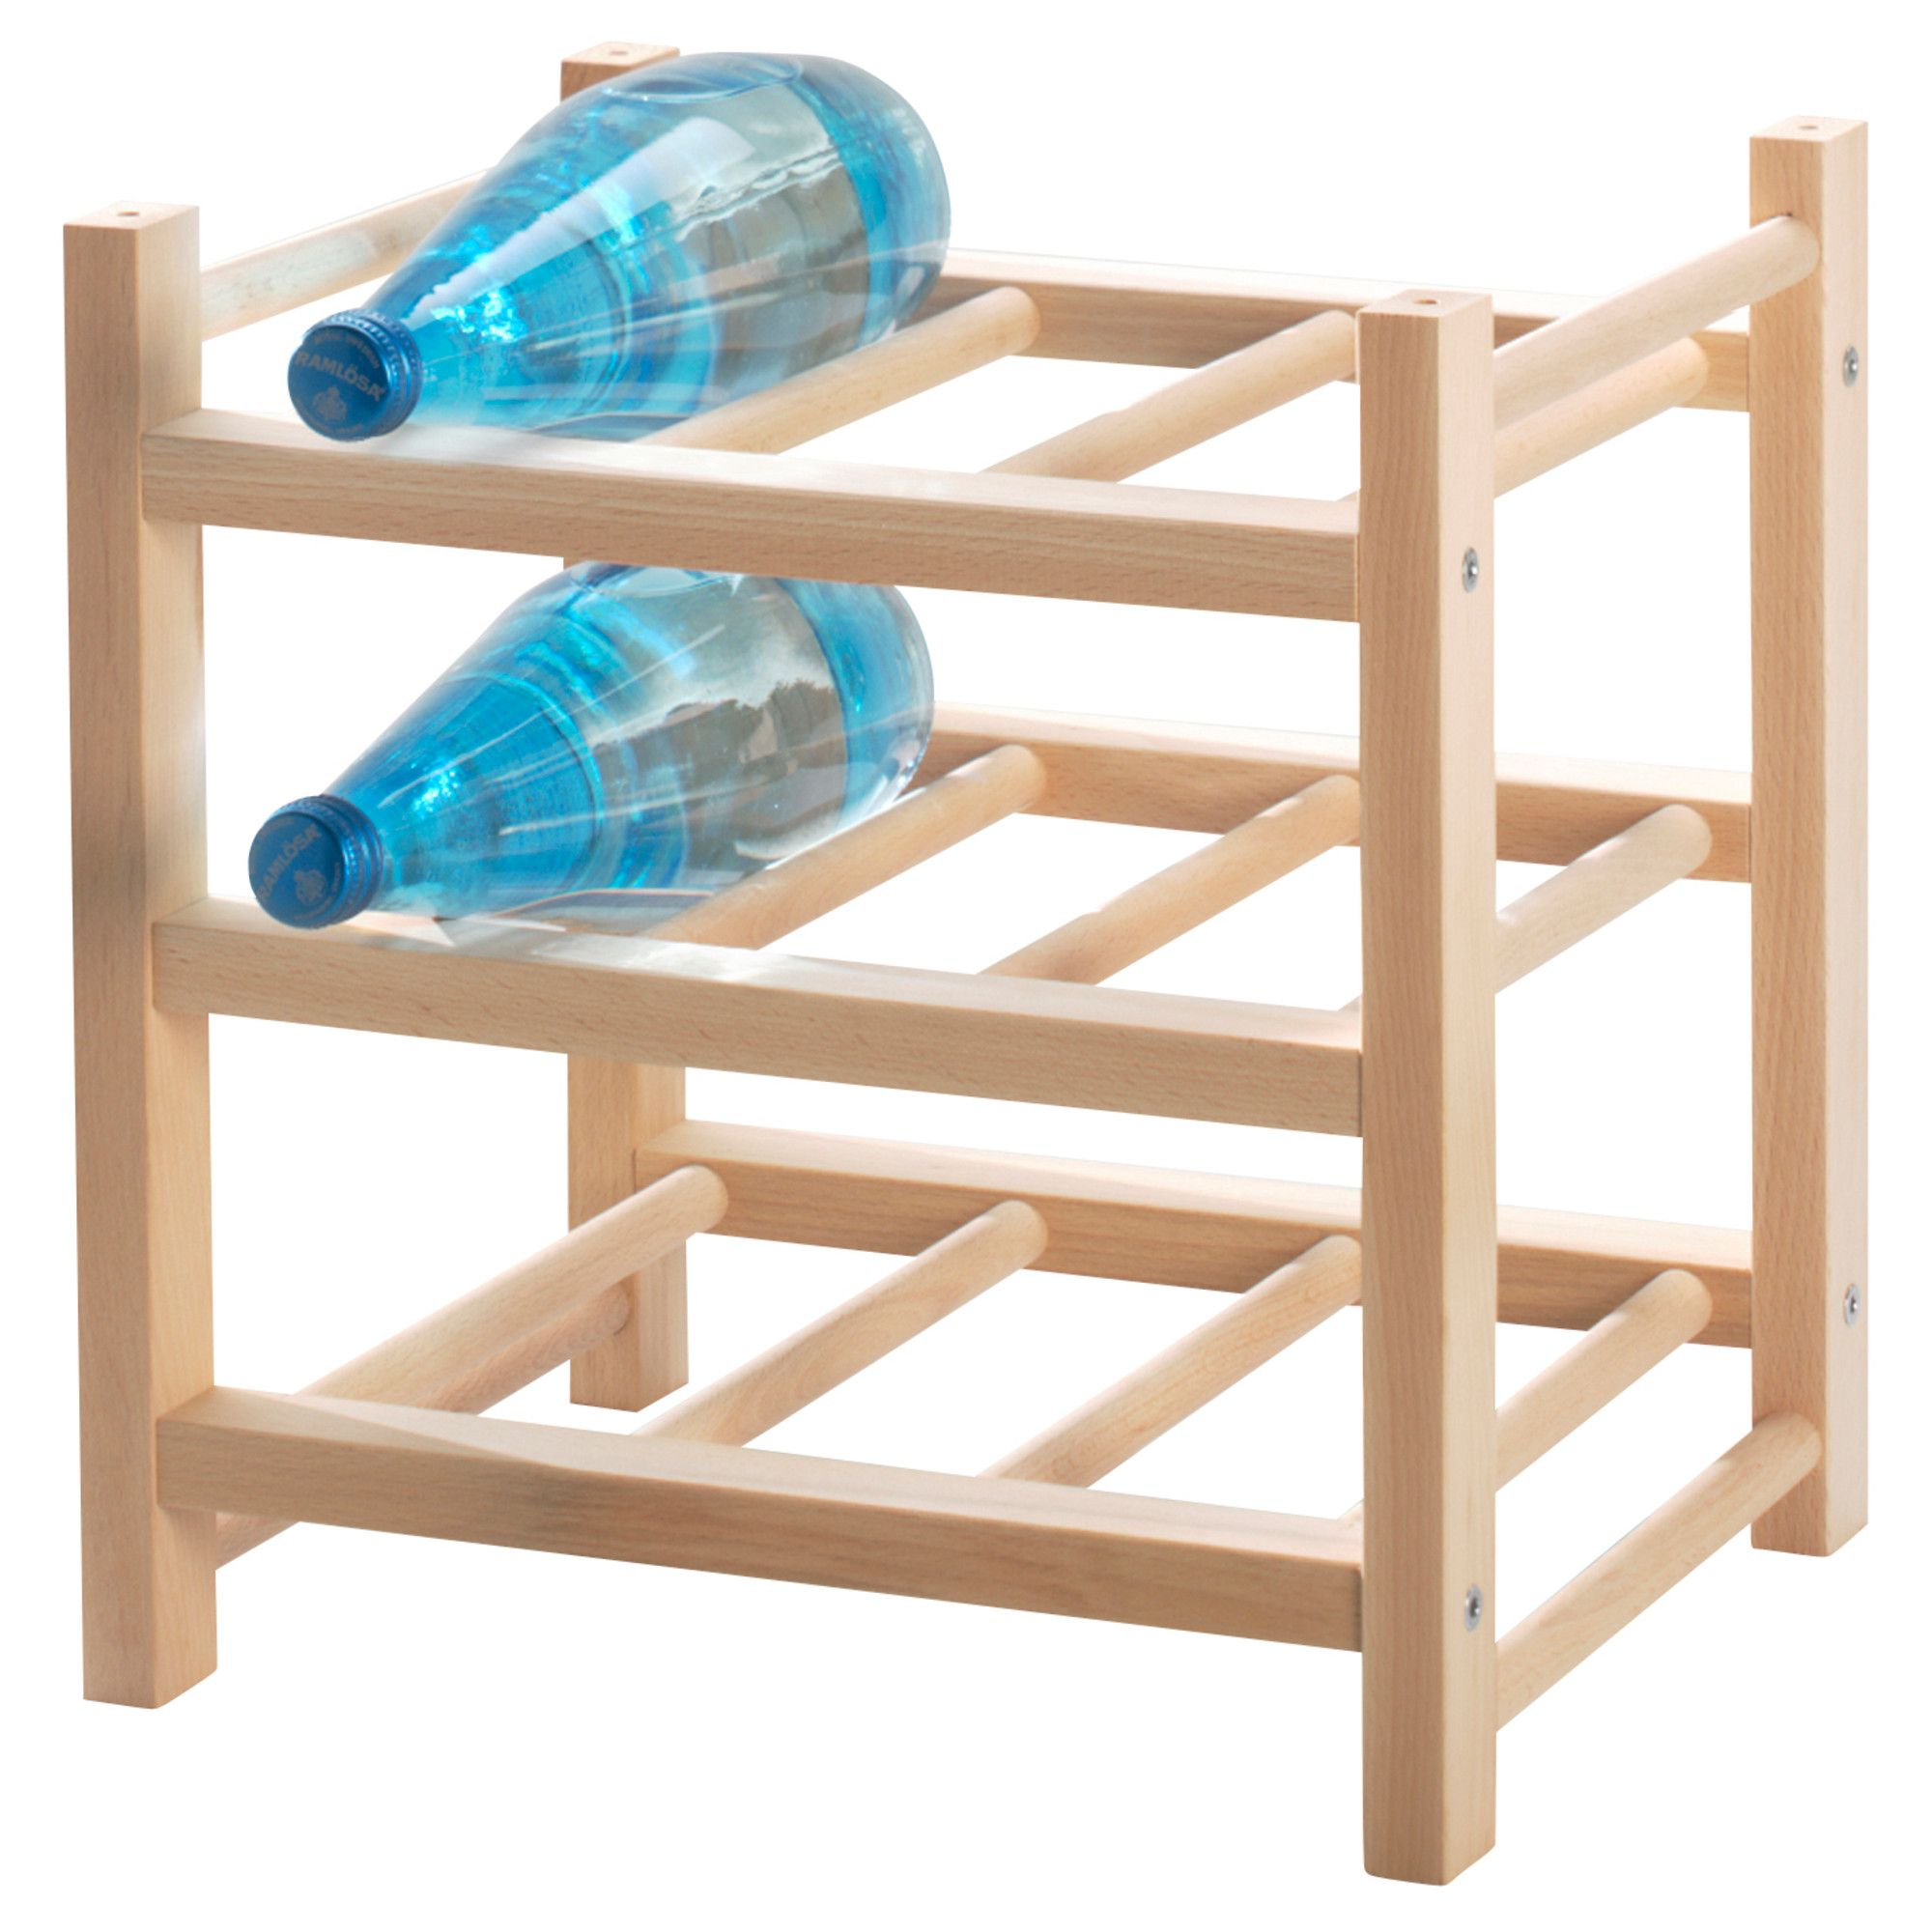 hutten 9-bottle wine rack, solid wood | flaschenregal, ikea und flaschen